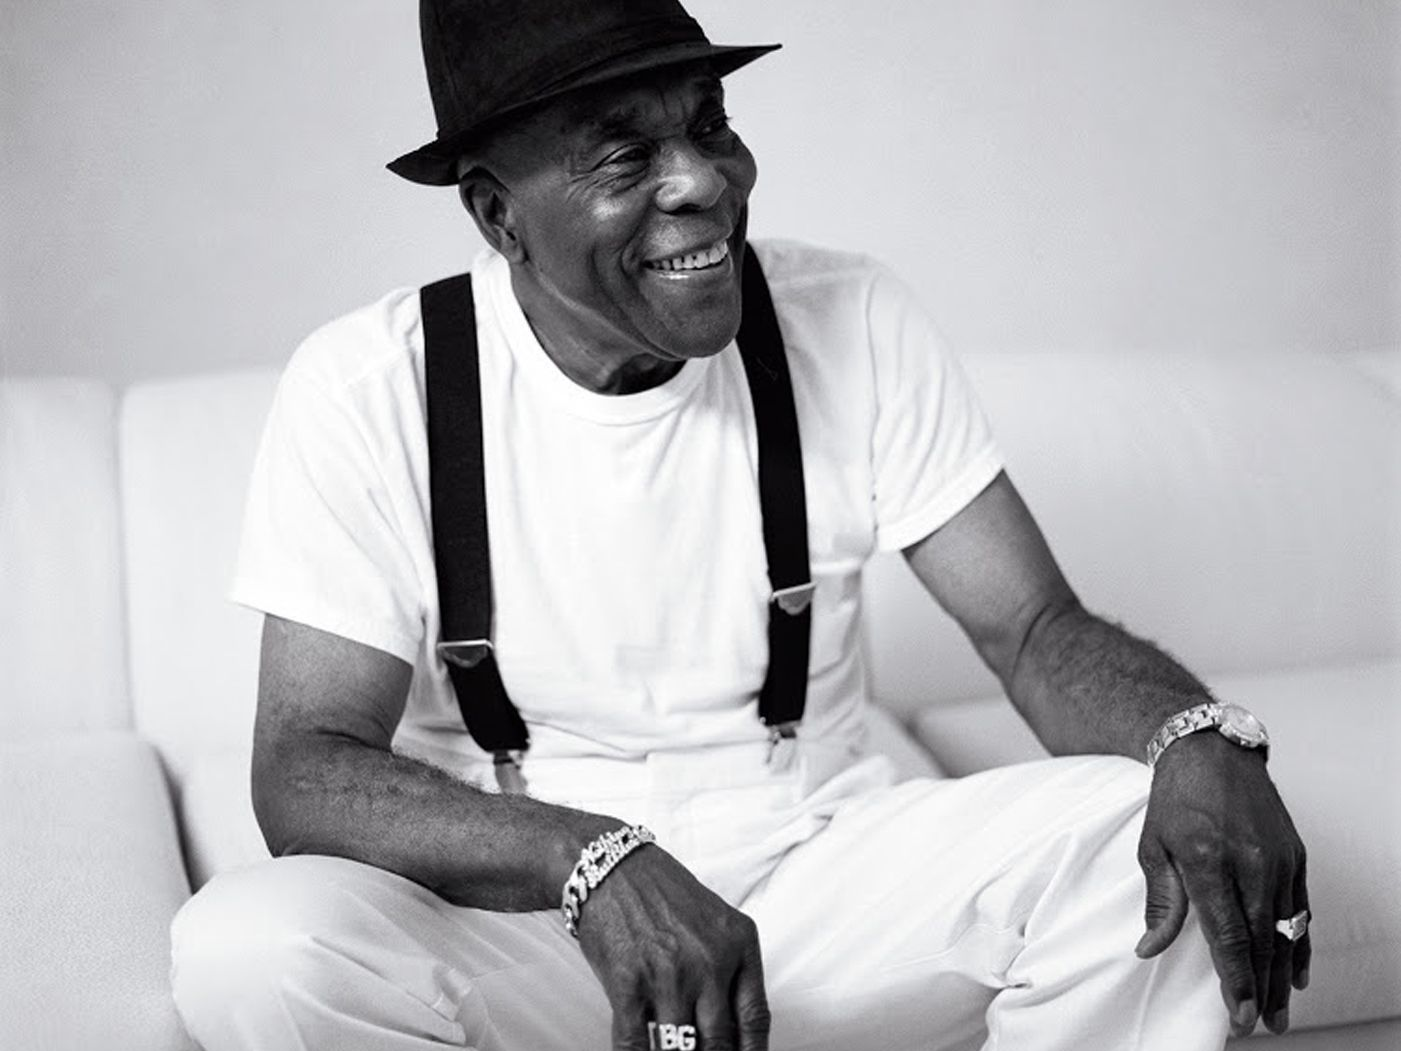 Buddy Guy – The Last Godfather of the Chicago Blues